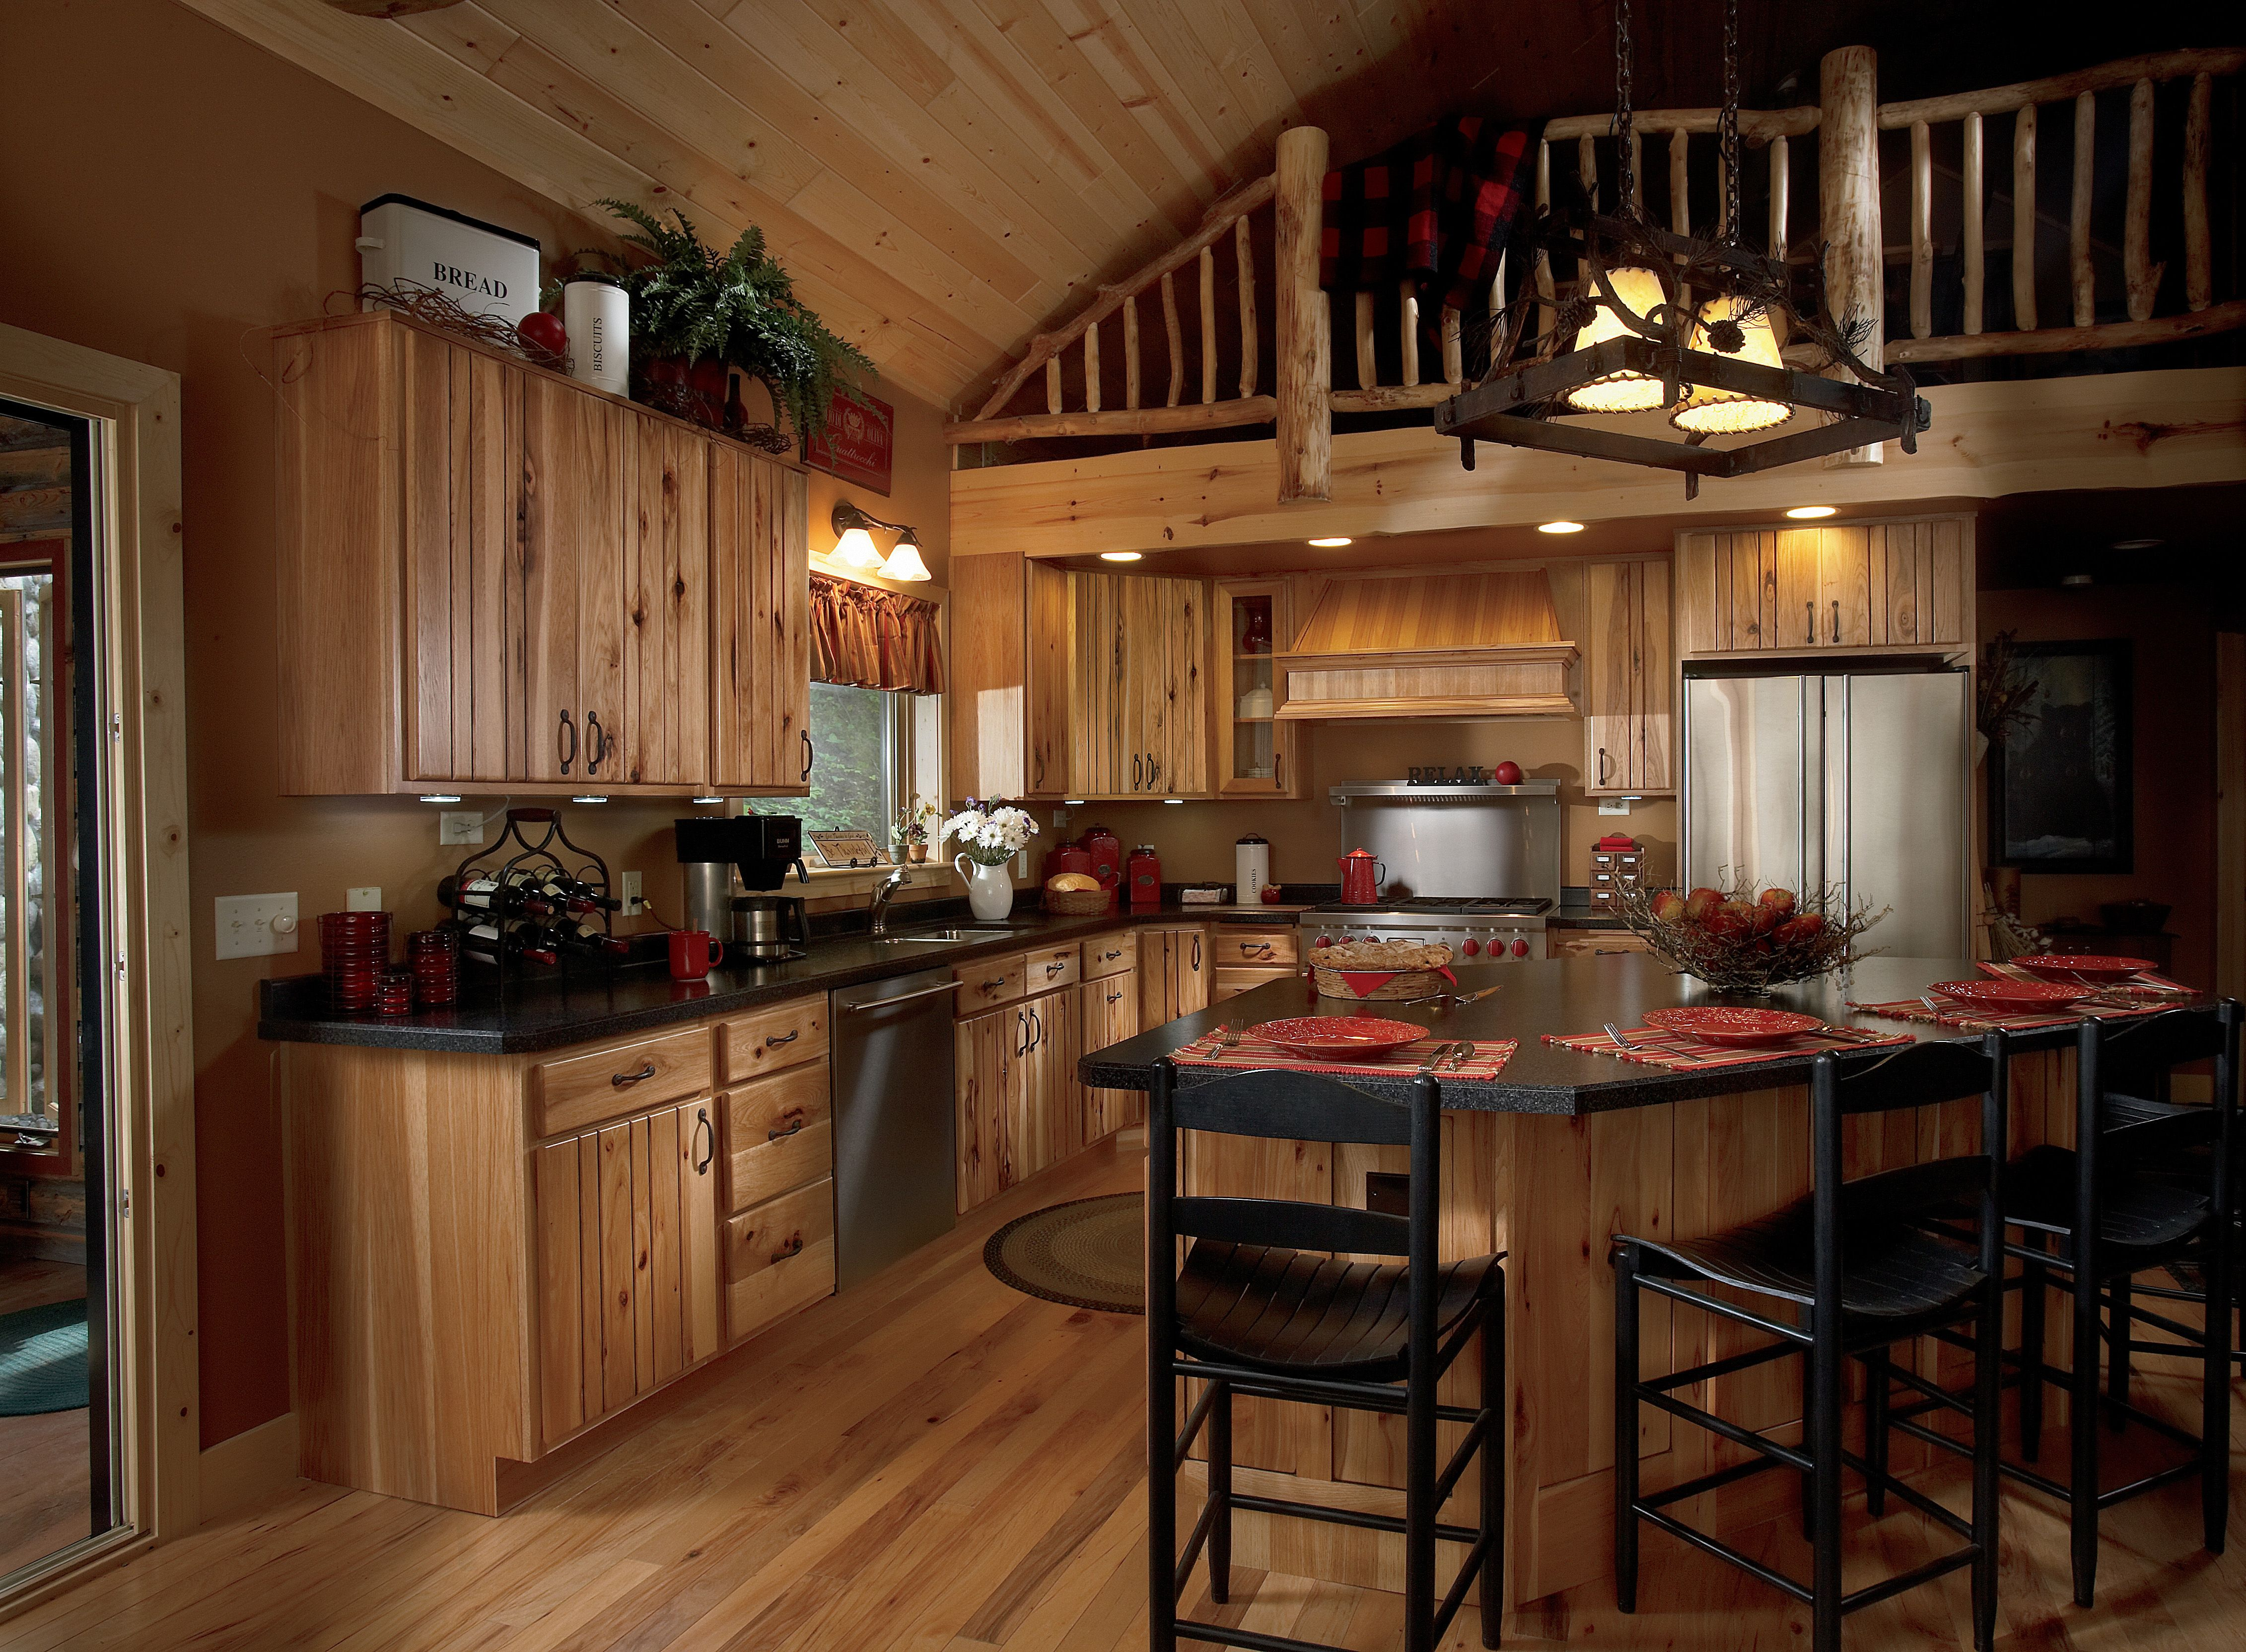 what granite choice with natural hickory cabinets kitchens what granite choice with natural hickory cabinets kitchens forum gardenweb home pinterest hickory cabinets natural hickory cabinets and